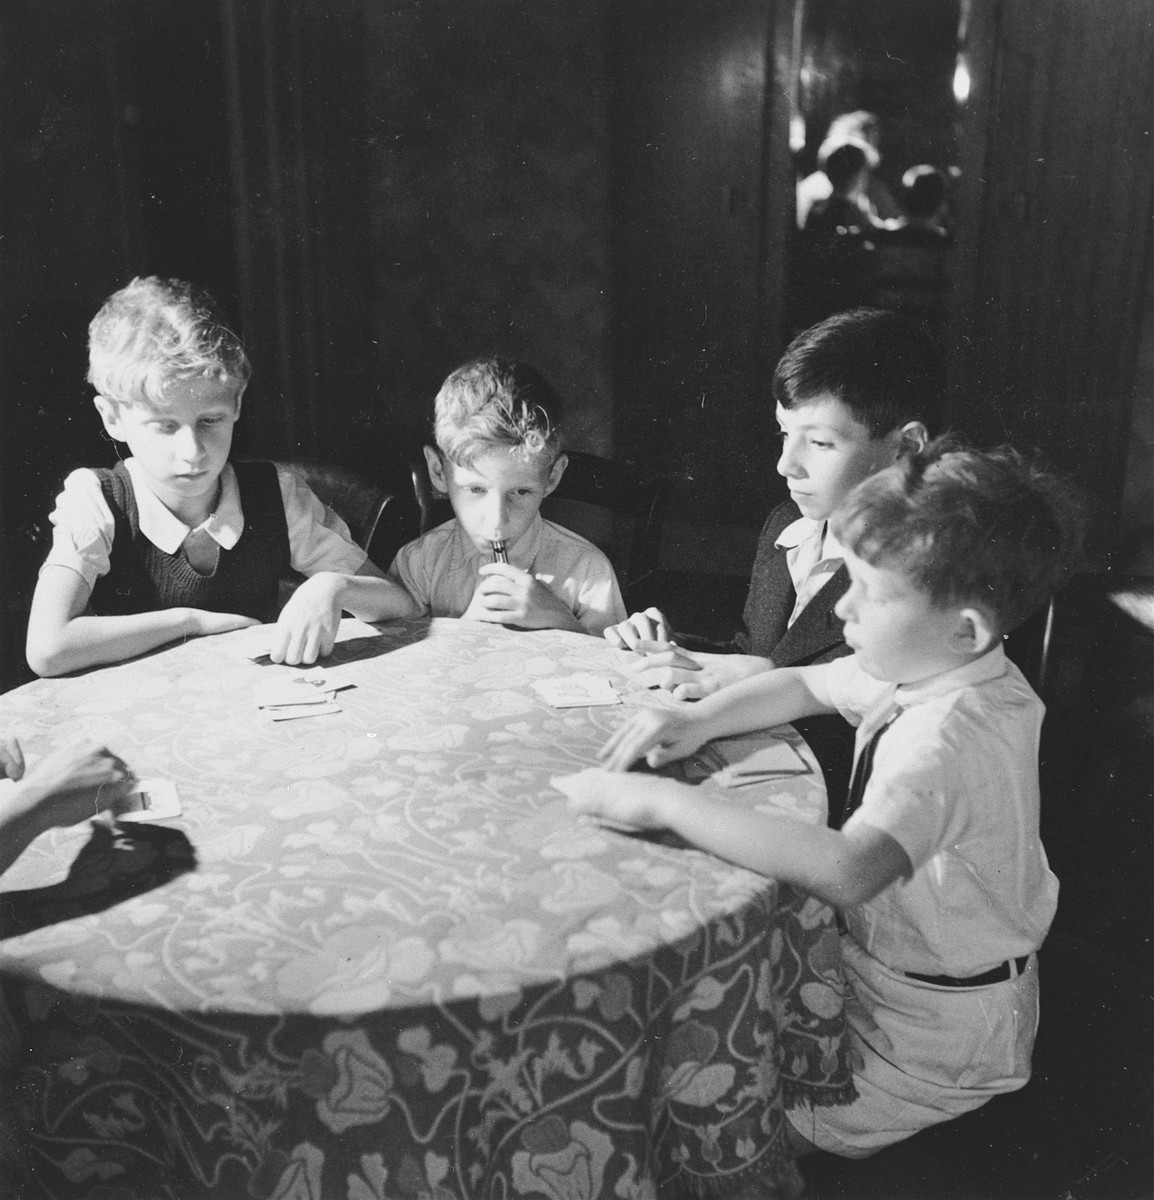 Four Jewish children sit around a table and play a card game in their apartment in Geneva, Switzerland.  Among those pictured are Andre (far left) and Claude Limot (second from left).